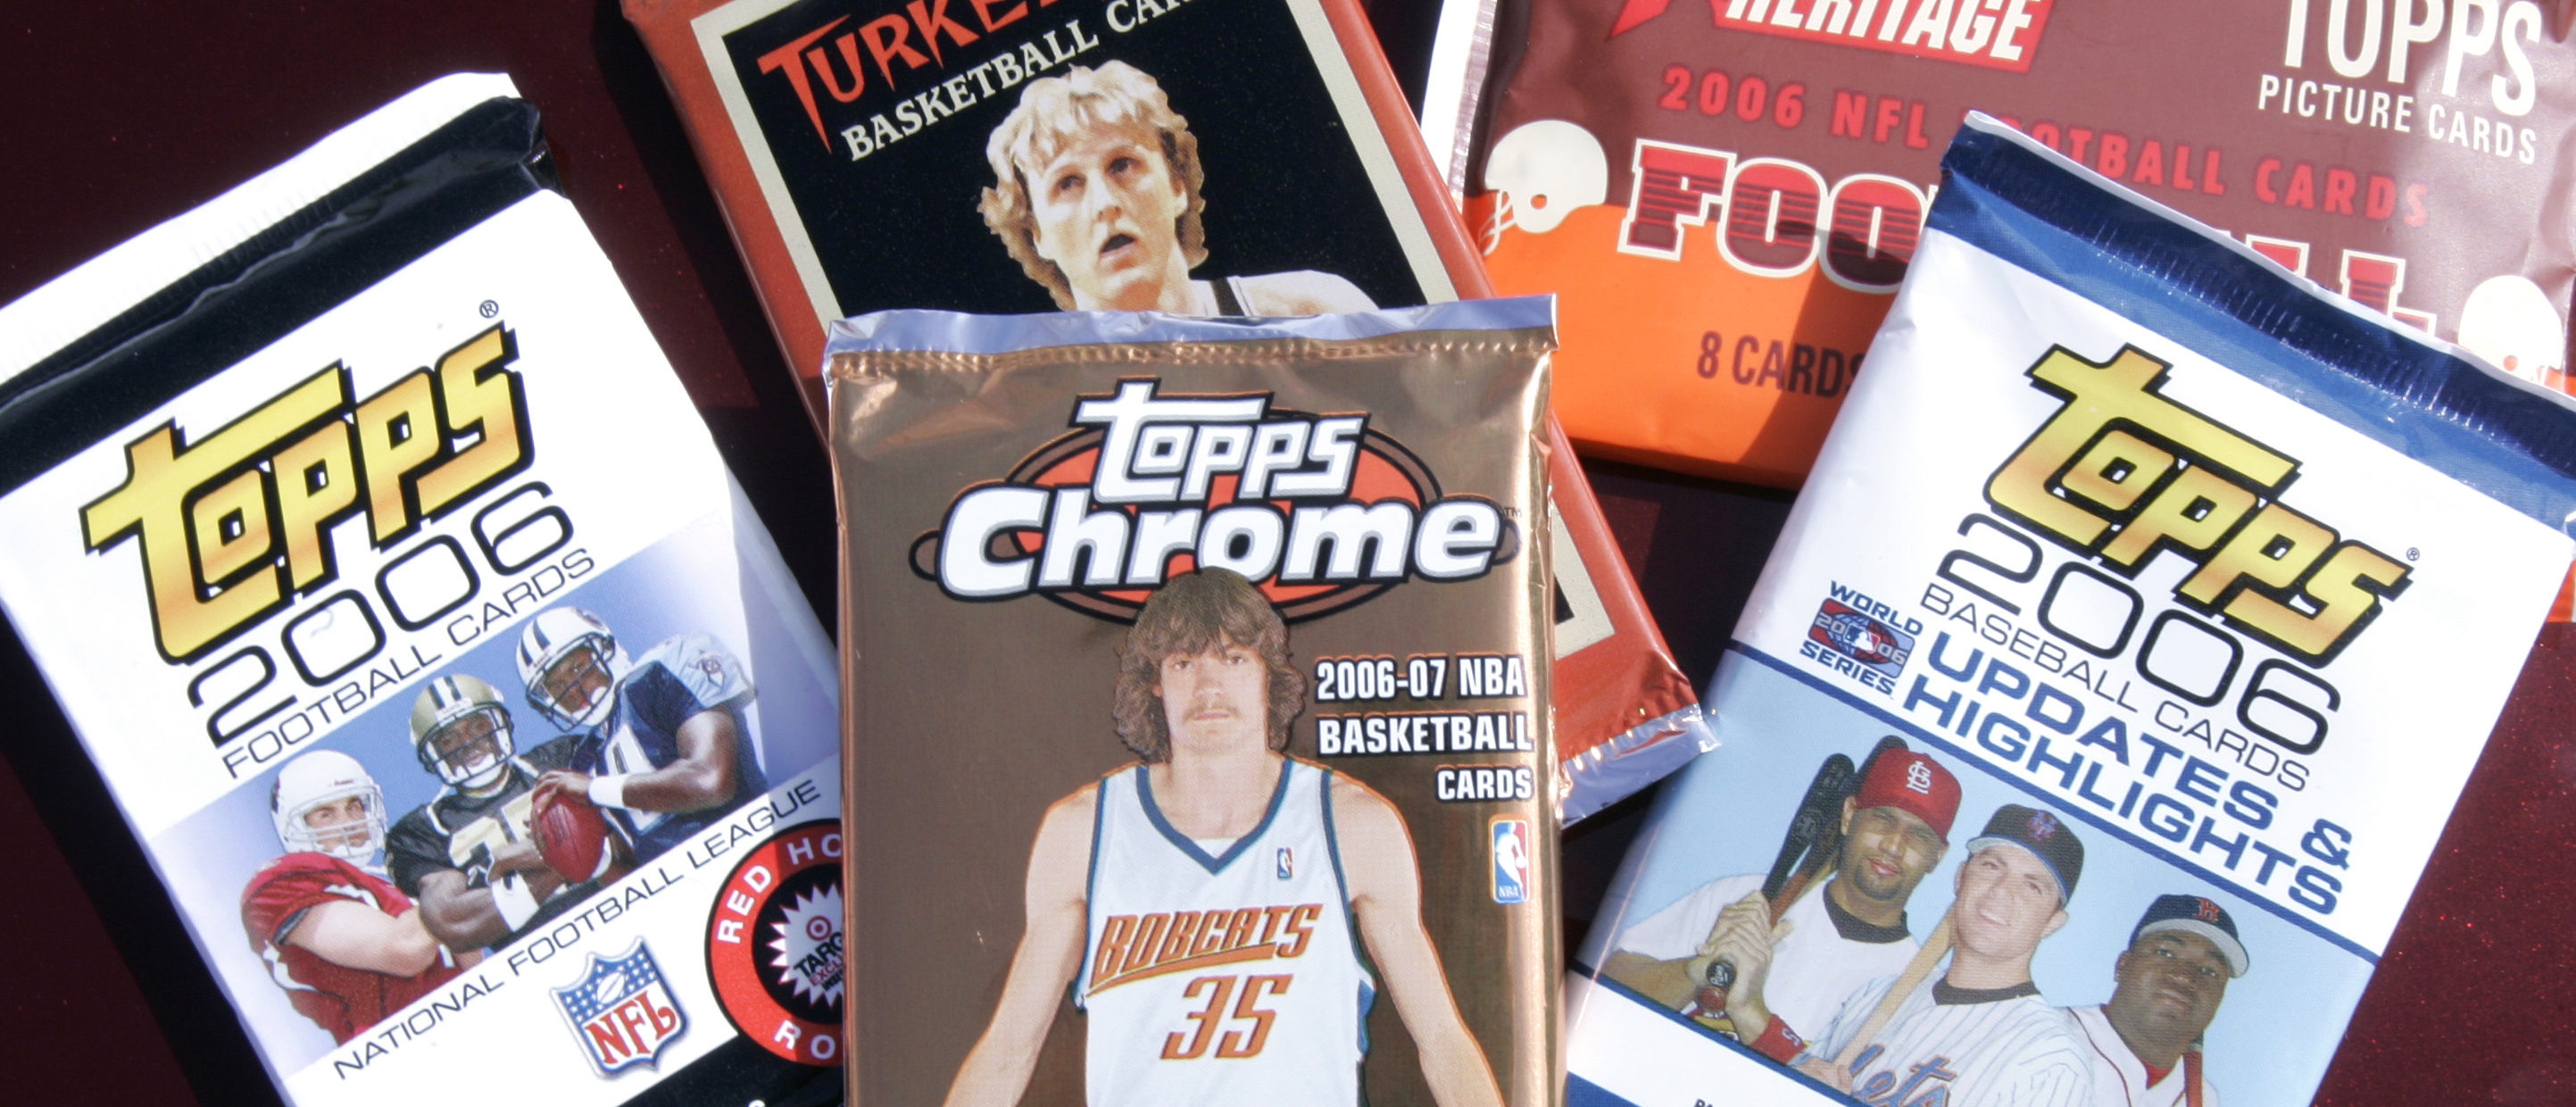 A variety of Topps Co. trading cards are displayed in Denver, Colorado March 6, 2007. REUTERS/Rick Wilking